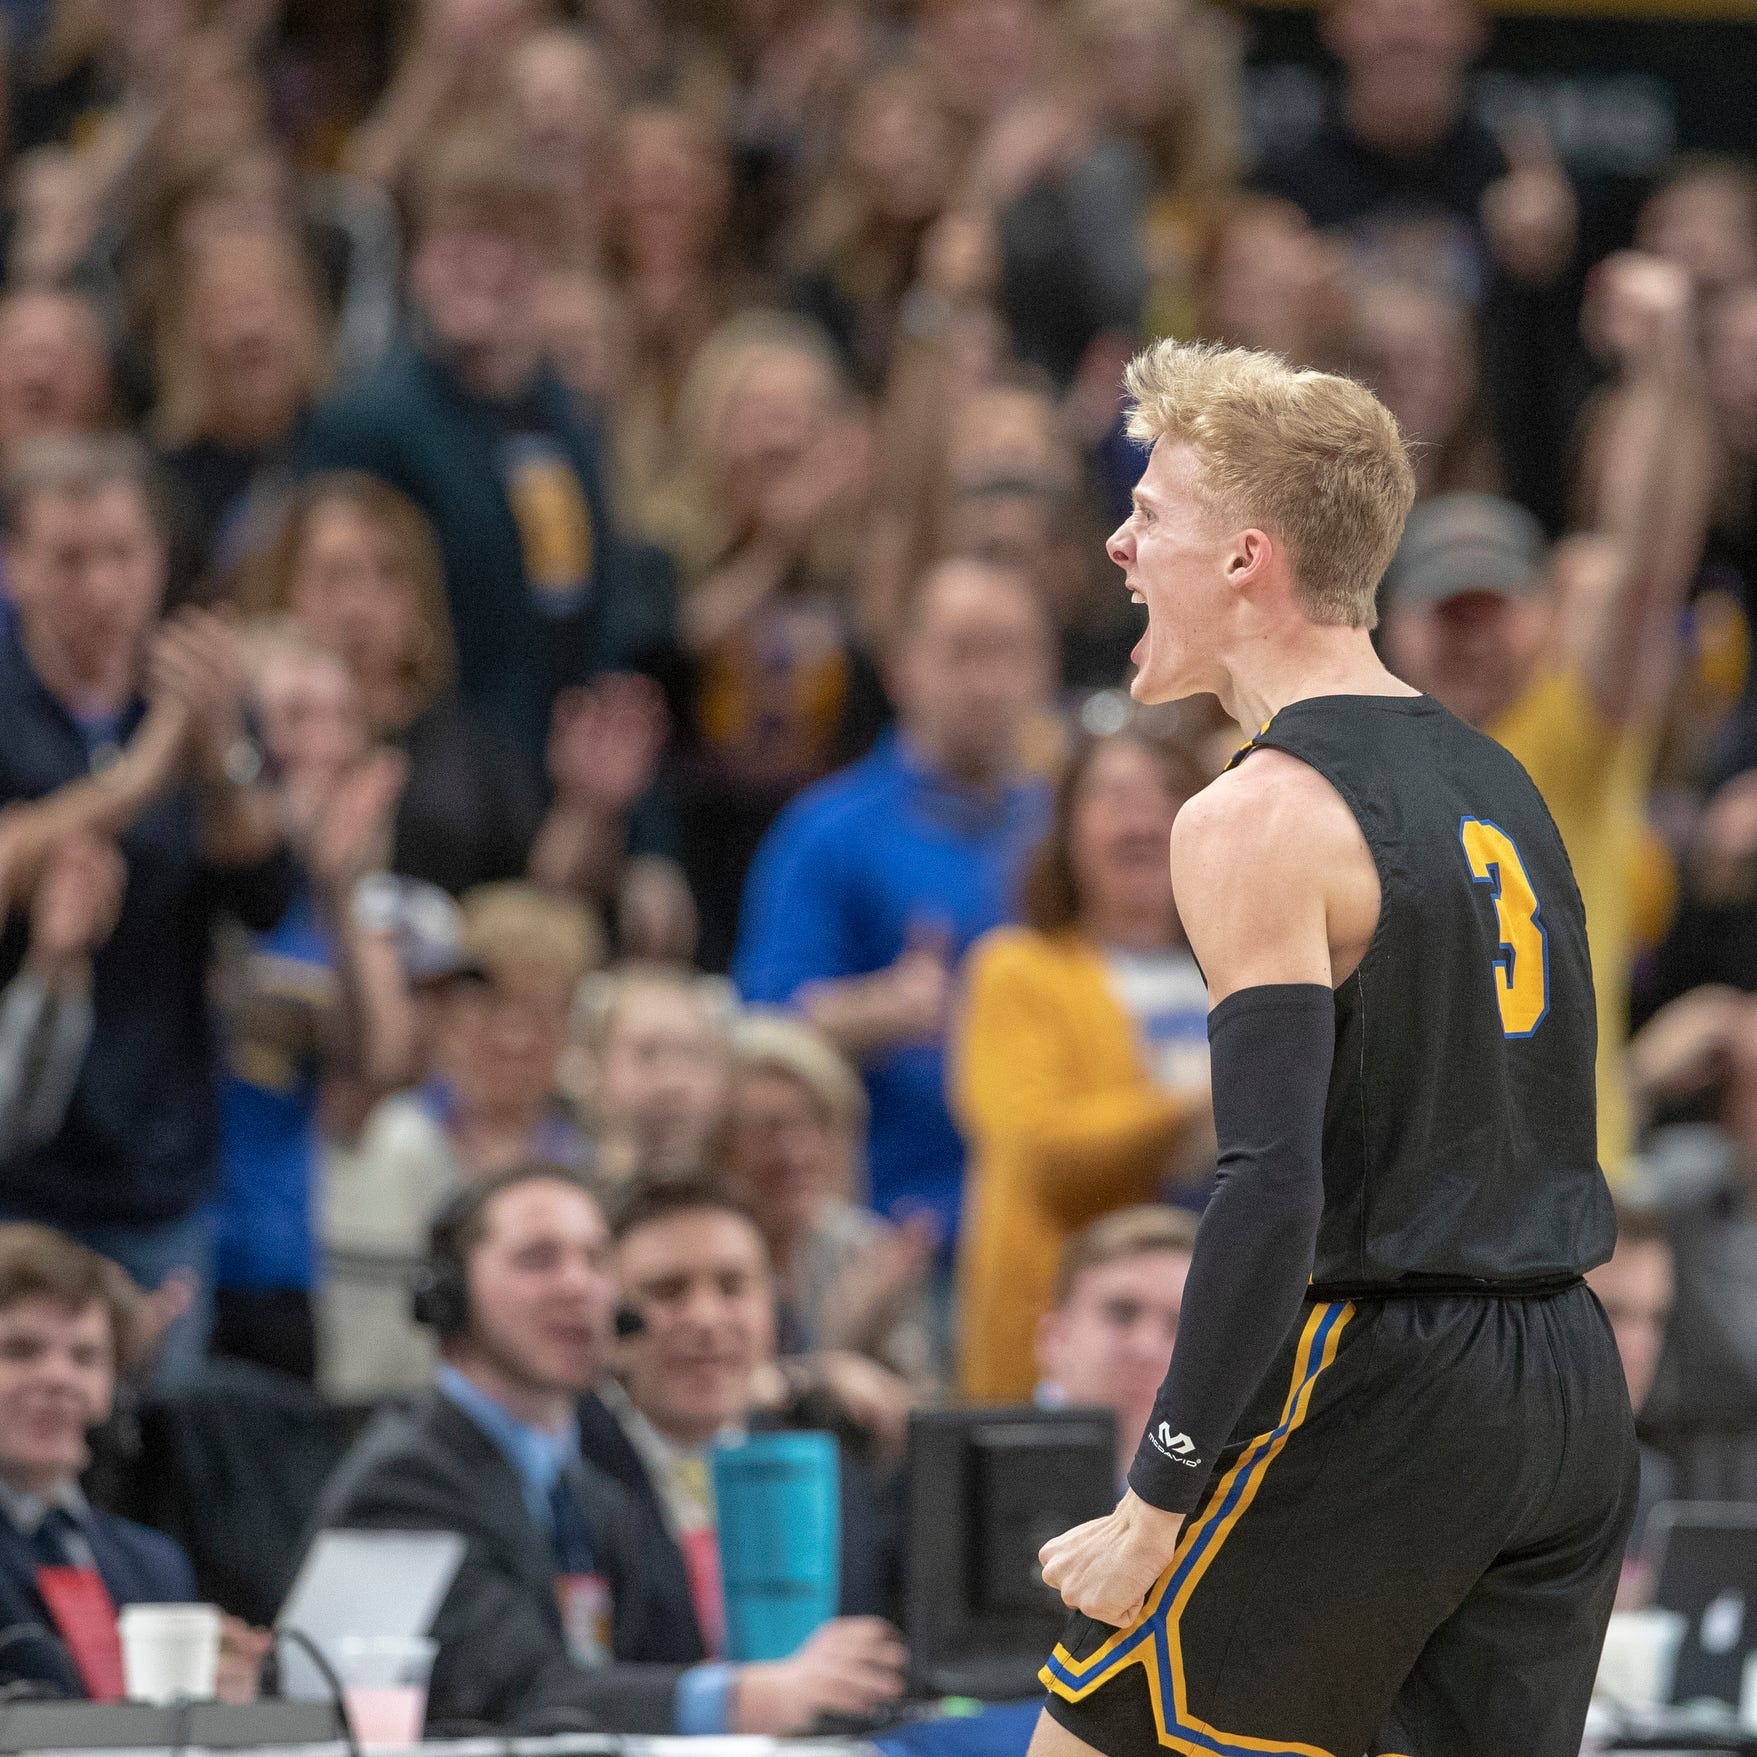 Karsten Windlan of Carmel High School pumps up his fans after coming up with a loose ball vs. Ben Davis in the Class 4A Boys Basketball State Final, Bankers Life Fieldhouse, Indianapolis, Saturday, March 23, 2019. Carmel won 60-55.